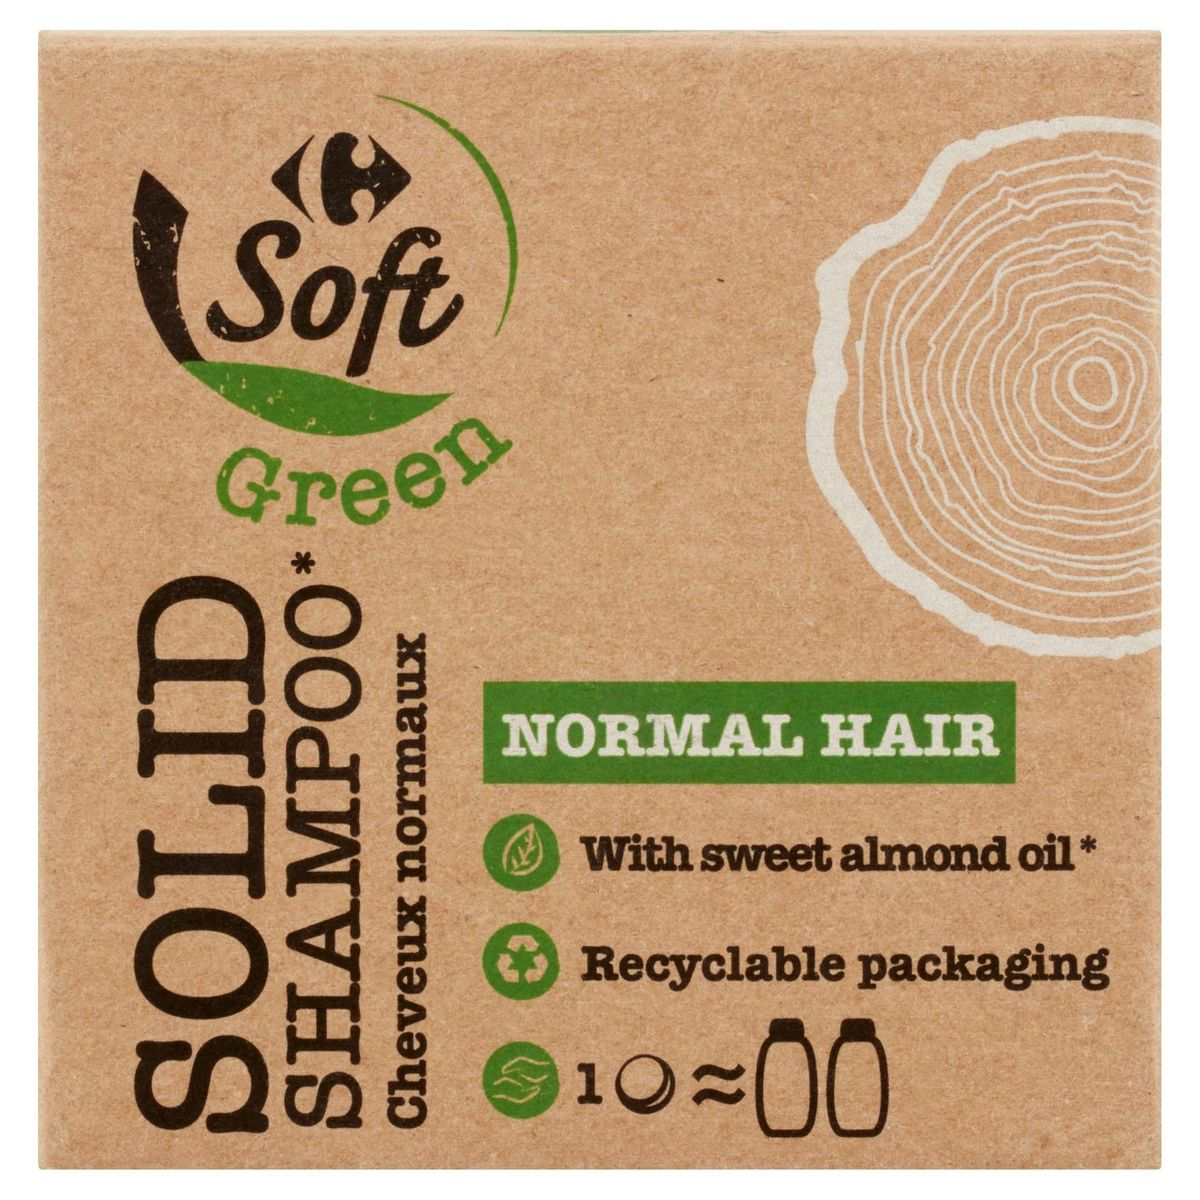 Carrefour Soft Green Solid Shampoo Cheveux Normaux 75 g